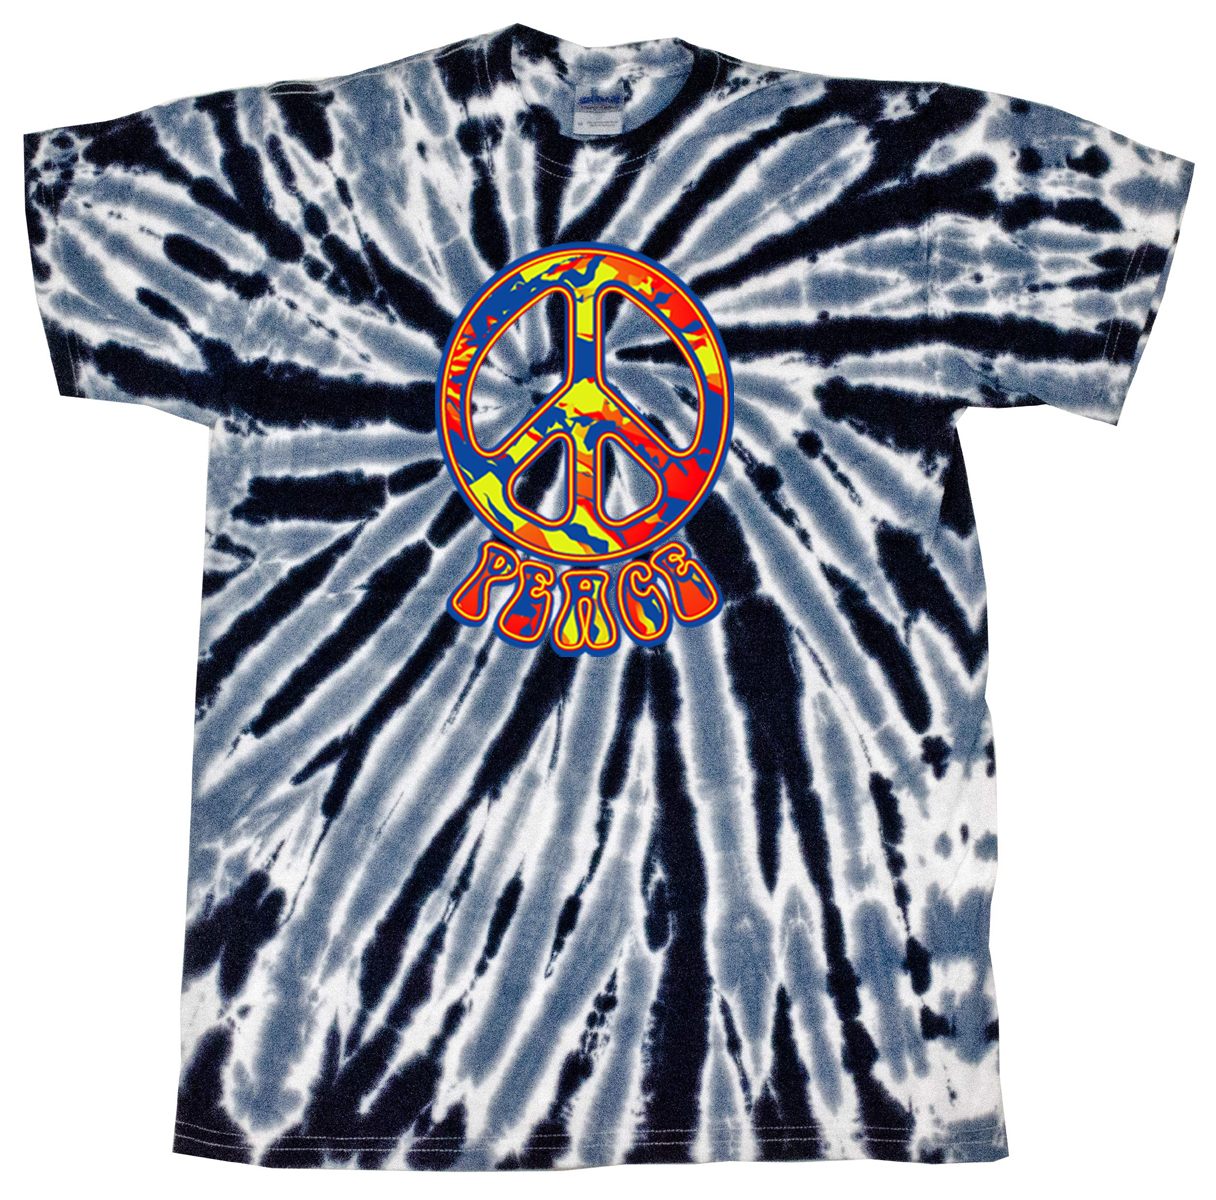 Kids Peace Tie Dye Shirt Funky Peace Black Twist Youth Tie Dye